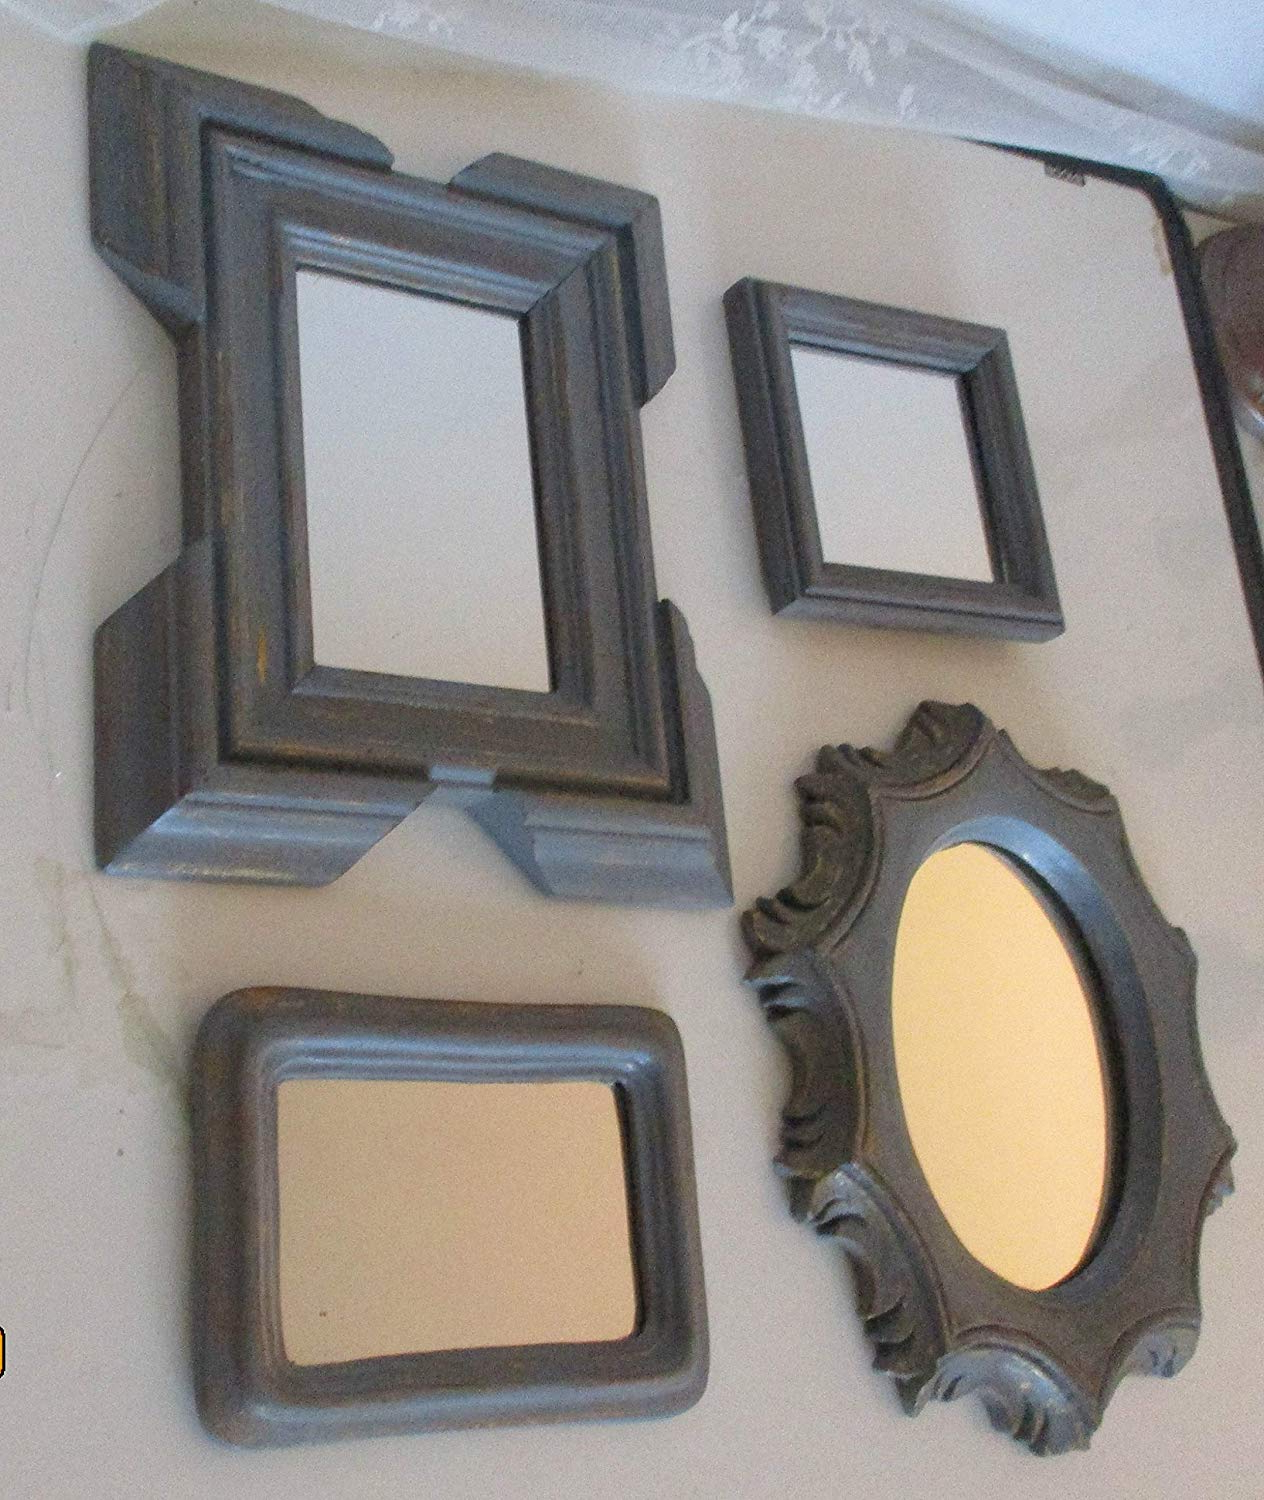 Well Liked Decorative Wall Mirror Sets With Amazon: Wall Mirrors, Grey Mirrors, Gray Mirrors, Decorative (View 20 of 20)